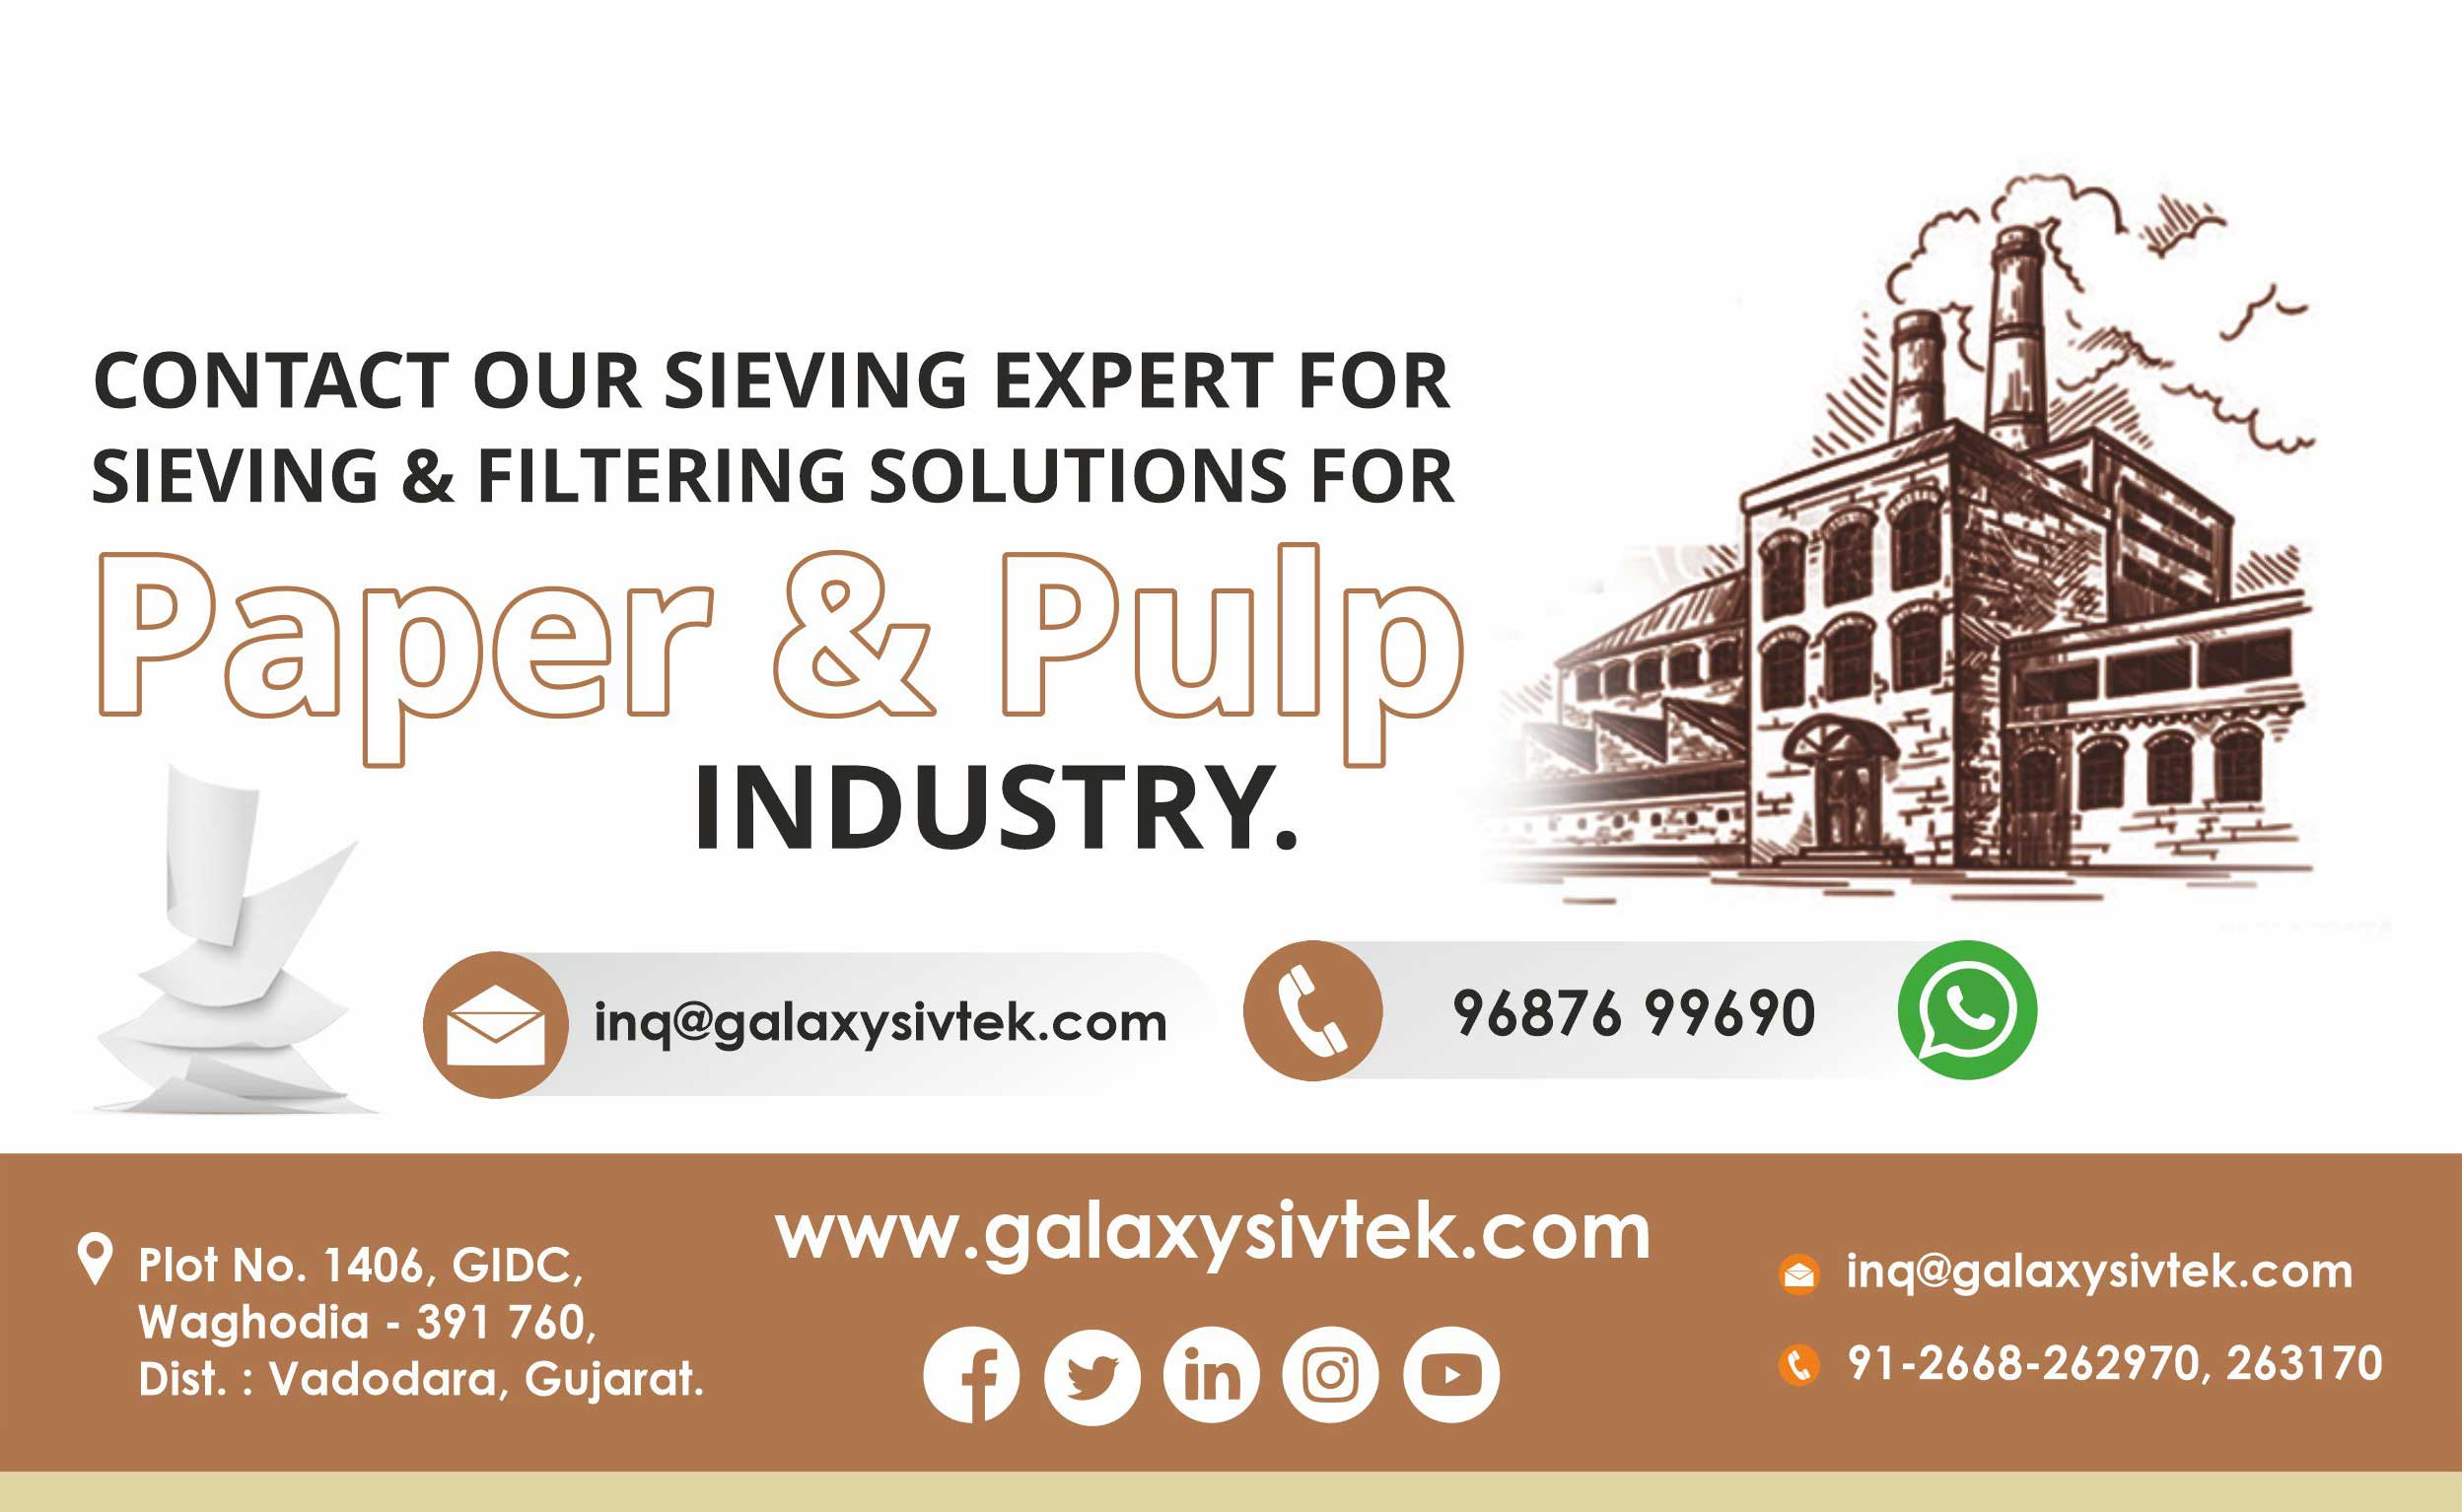 contact for sieving in paper pulp